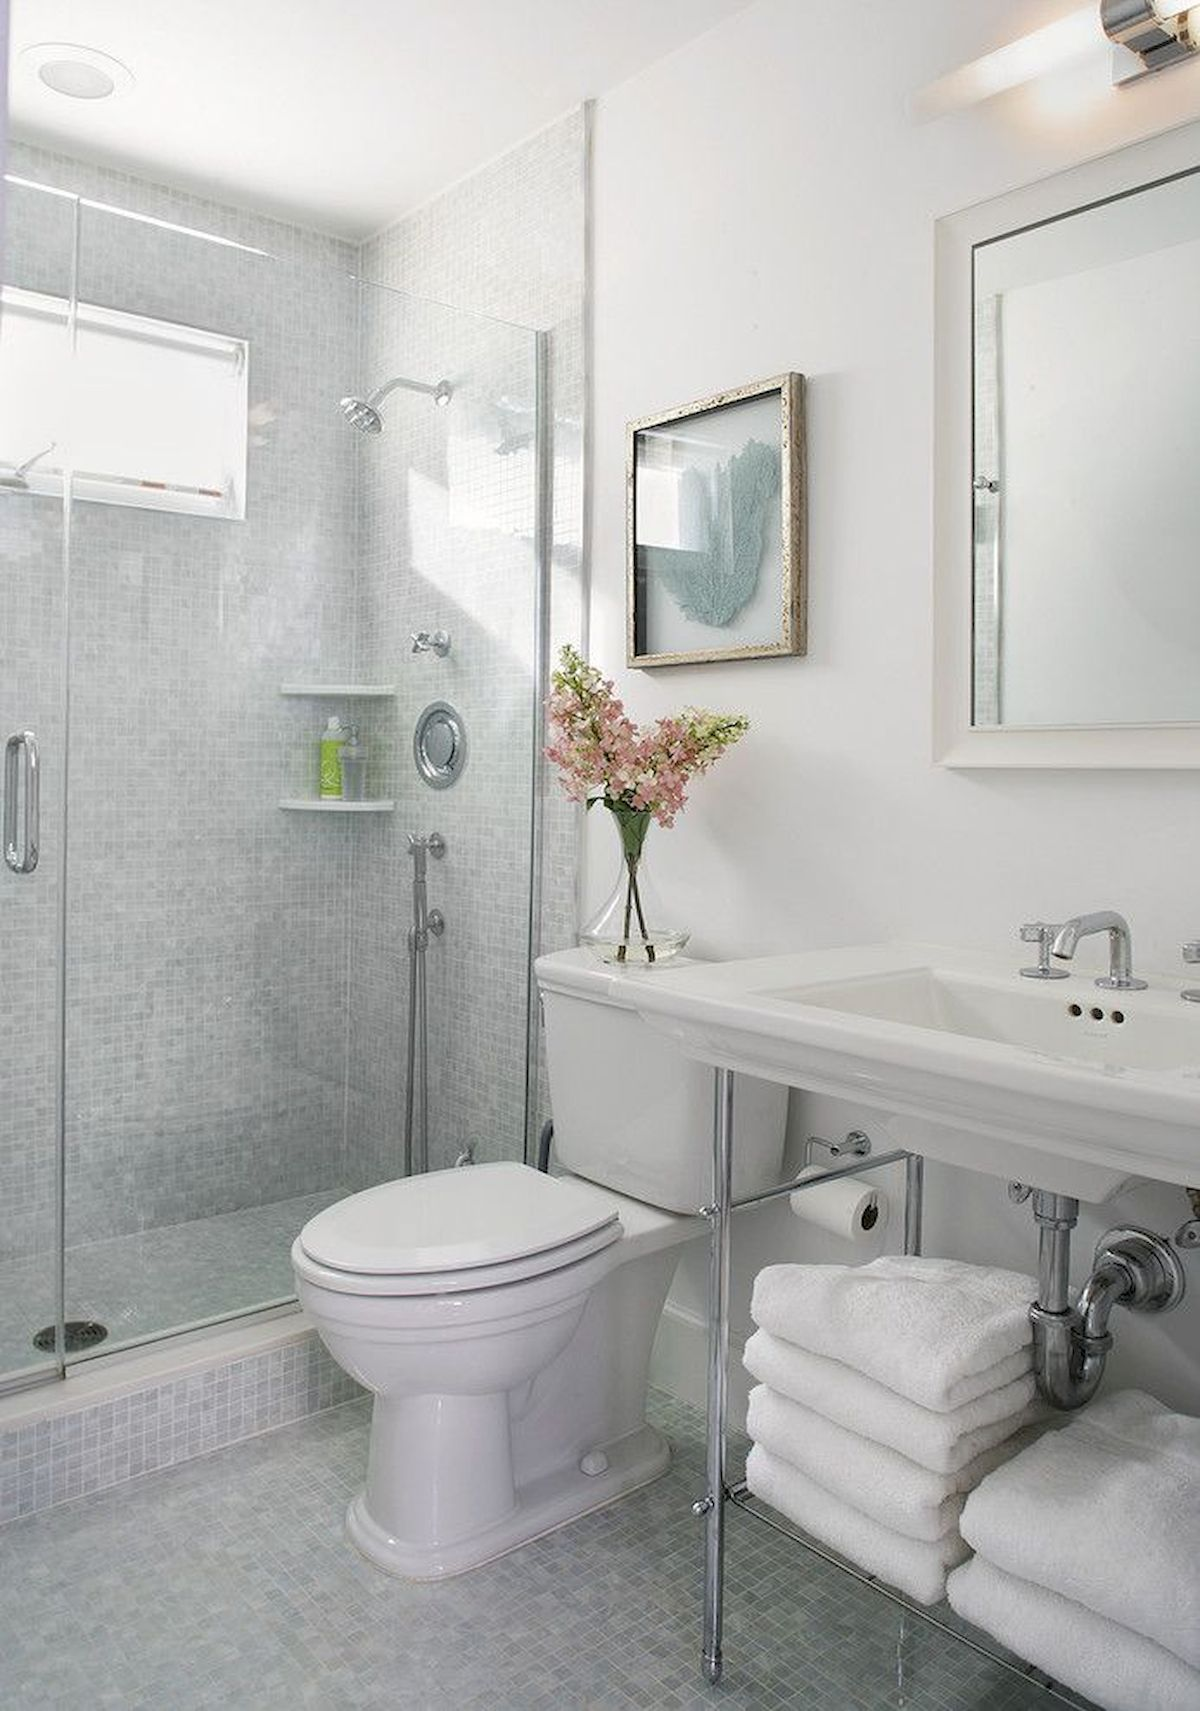 Captivating Space Saving Concepts Toilet Design For Small Room Bathroom design ideas uk